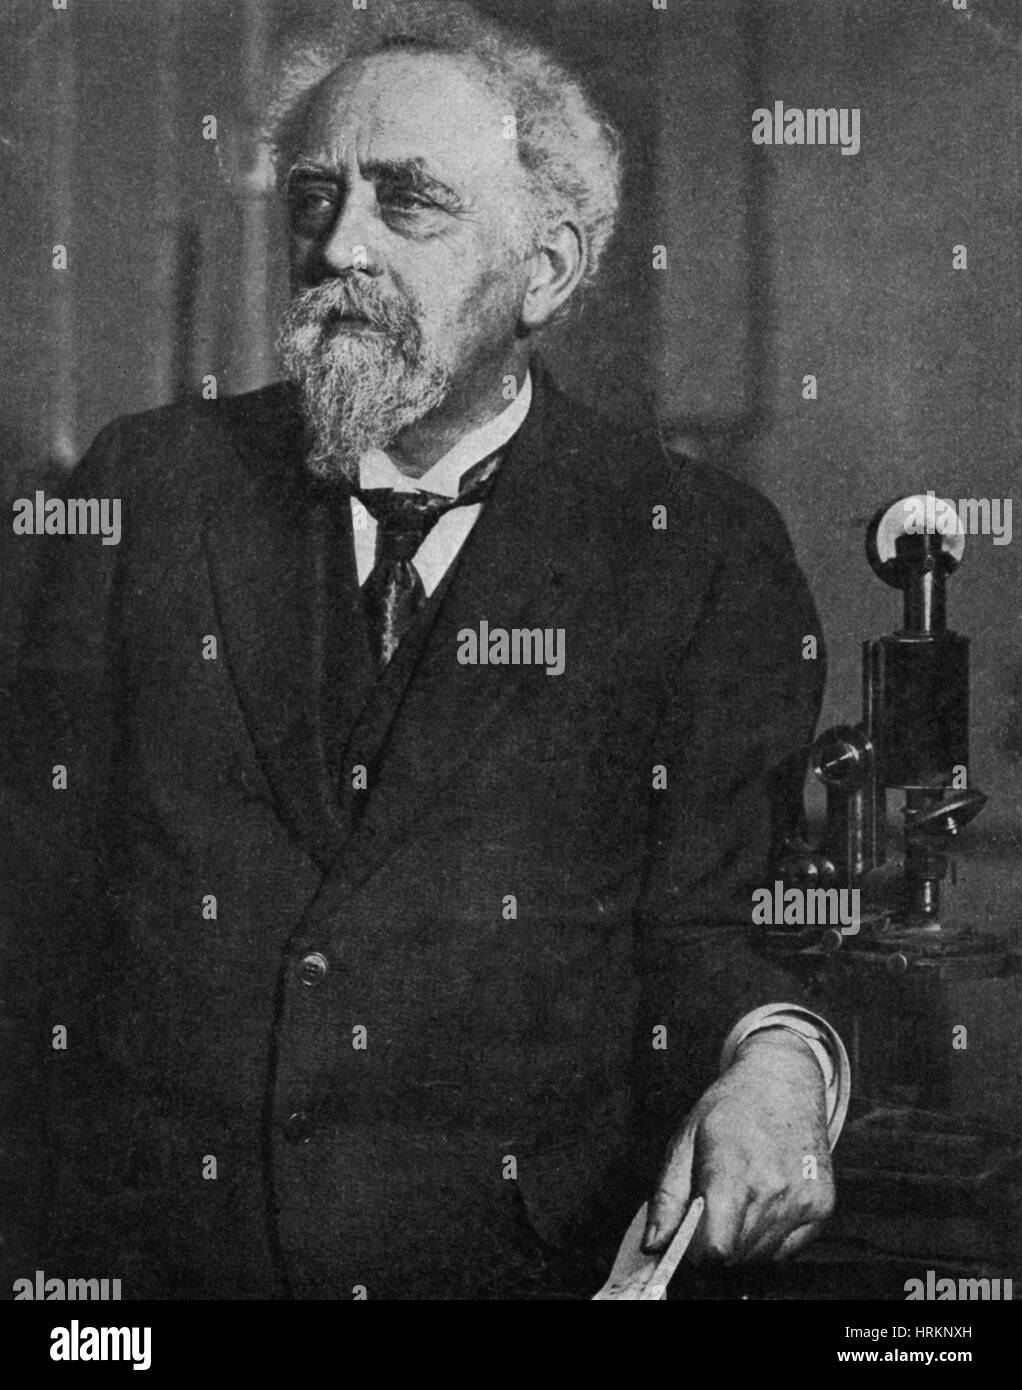 Jean Baptiste Perrin, French Physicist - Stock Image